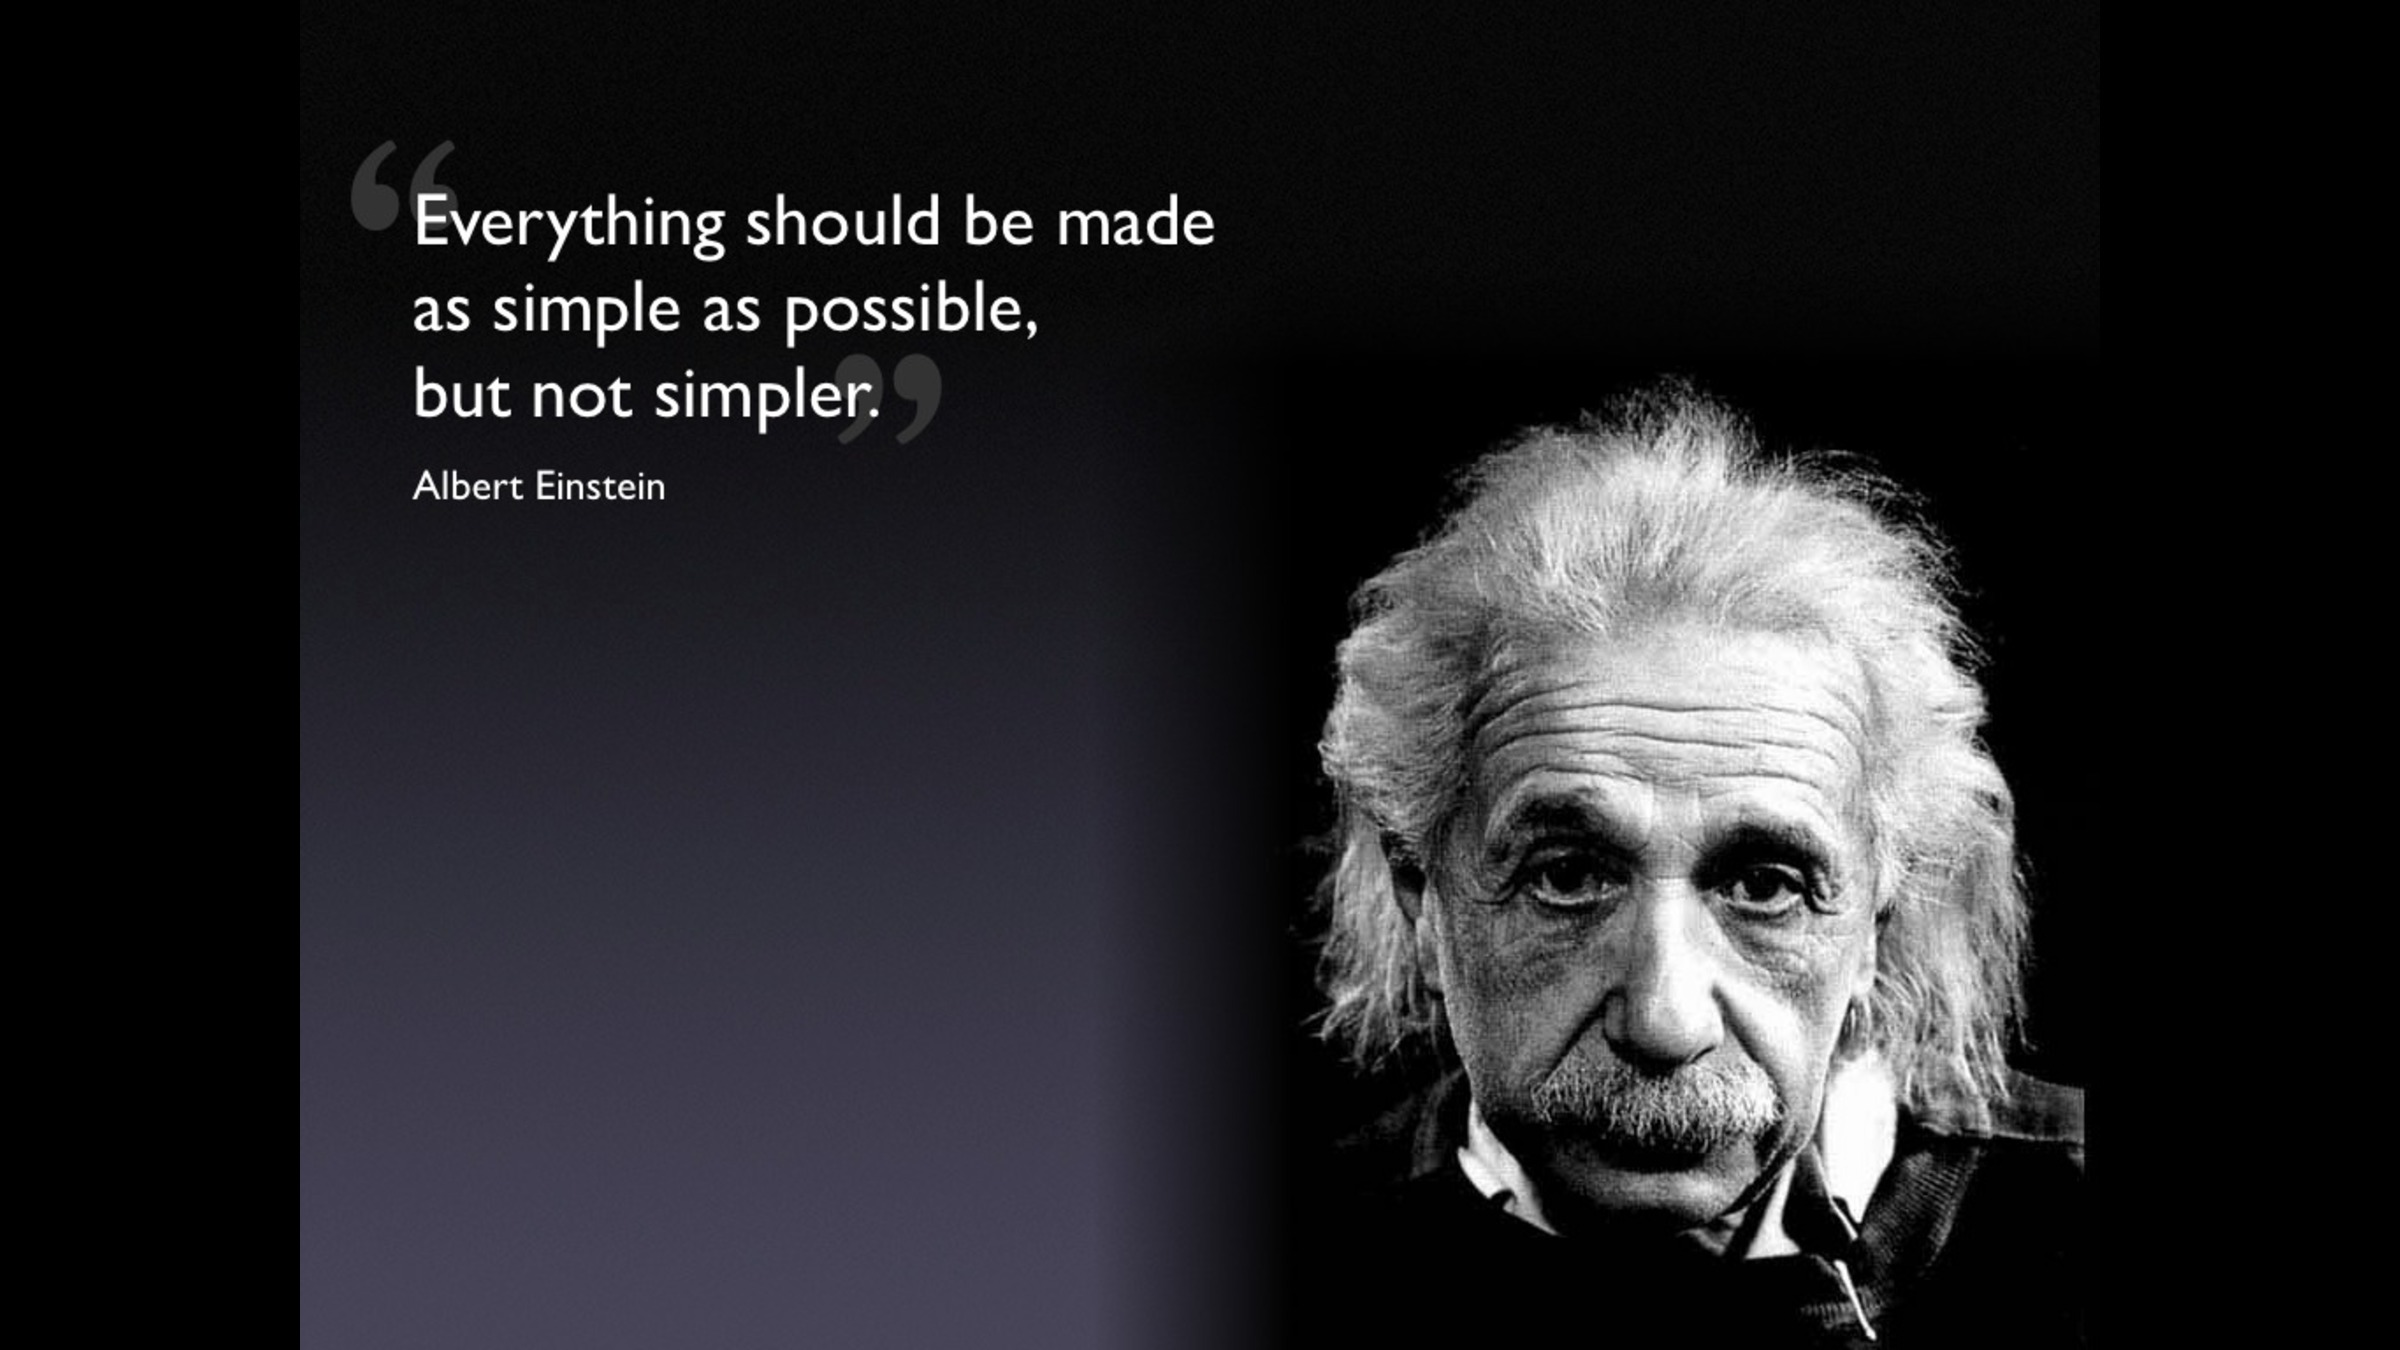 Everything should be made as simple as possible, but not simpler. Albert Einstein [2400×1350]